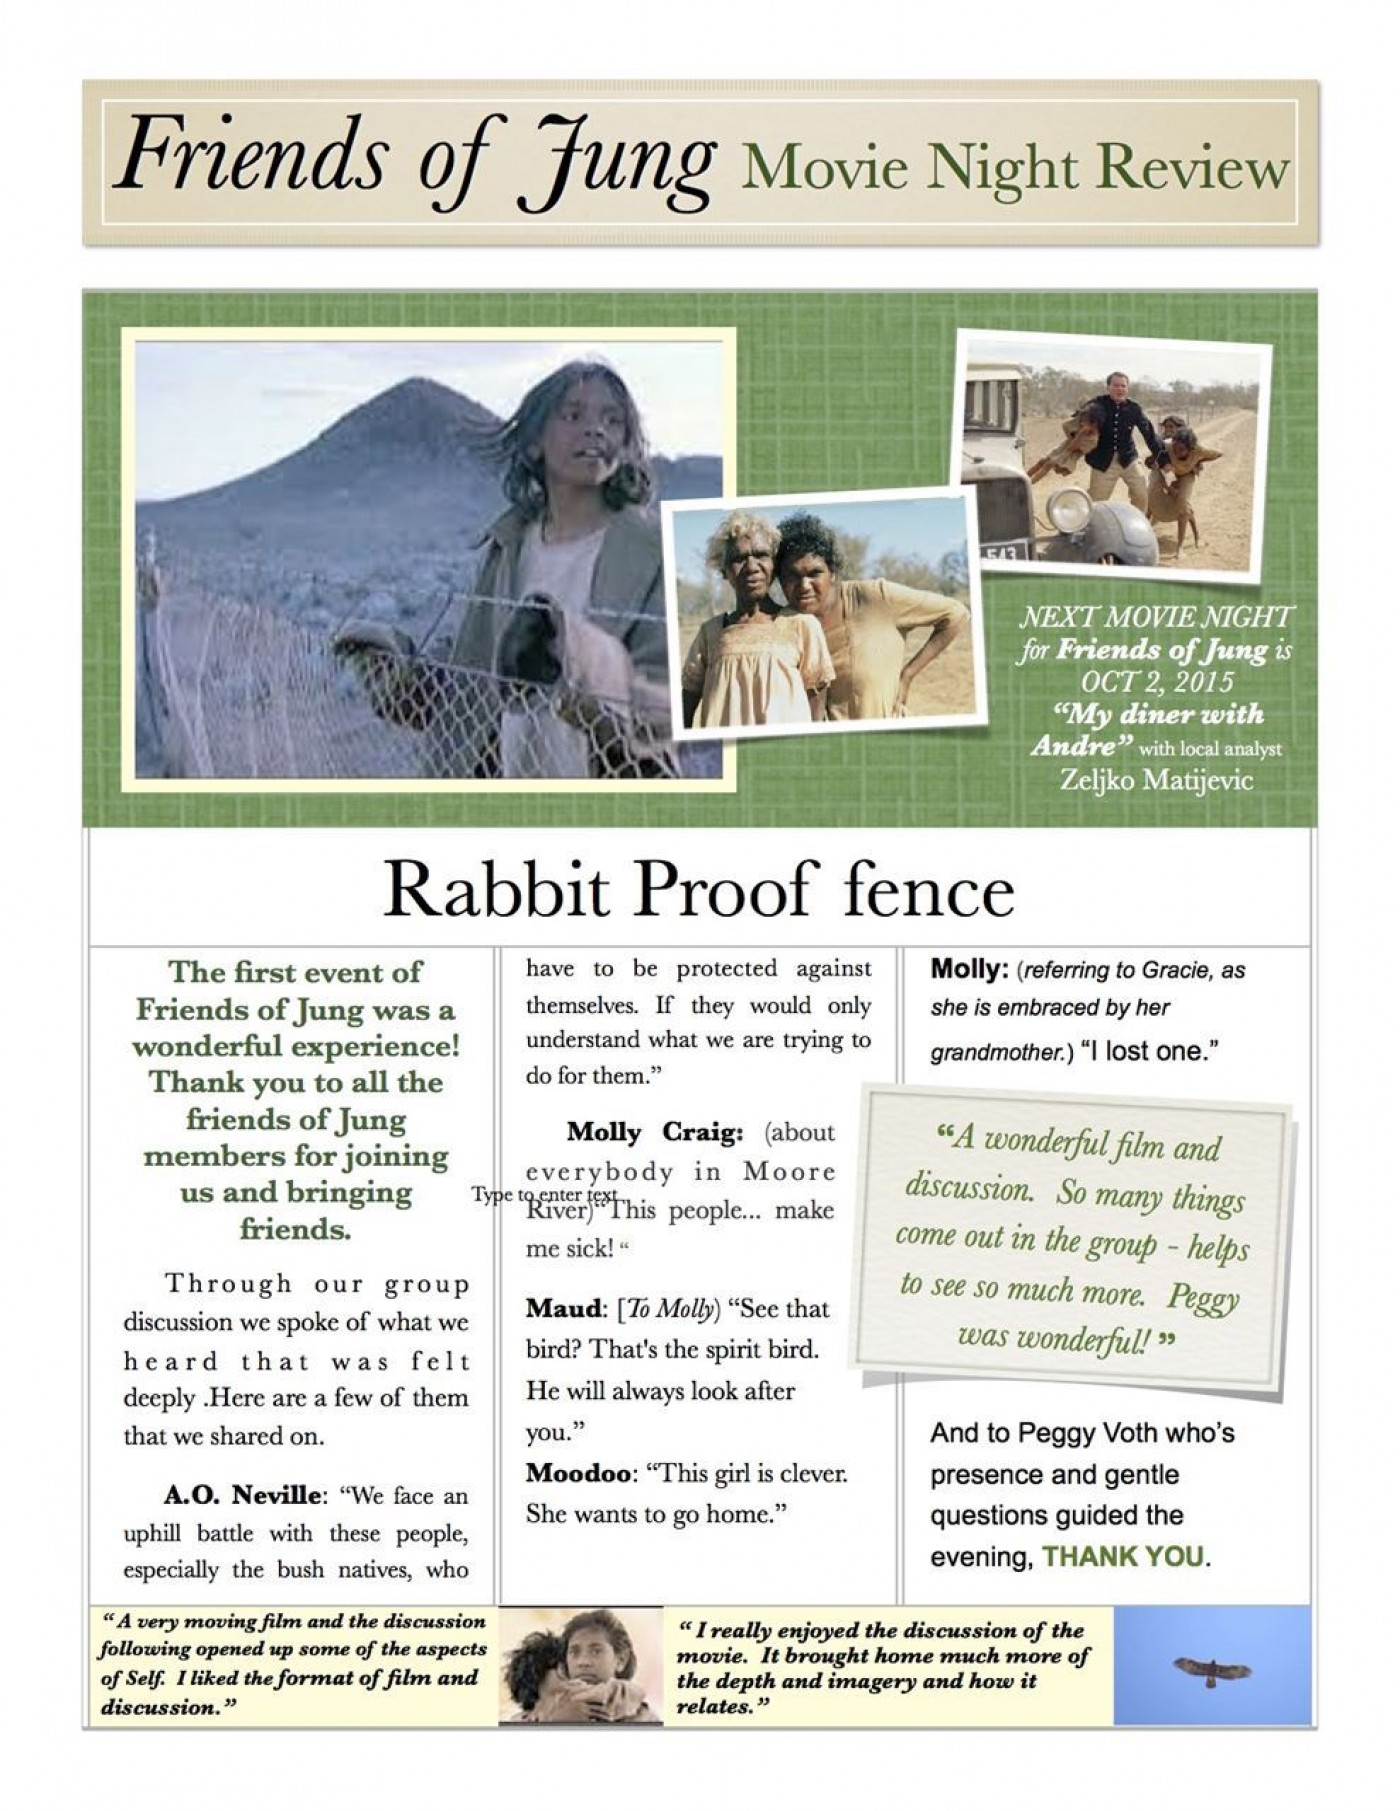 005 Essay Example Rabbit Proof Fence Review Top Film 1400